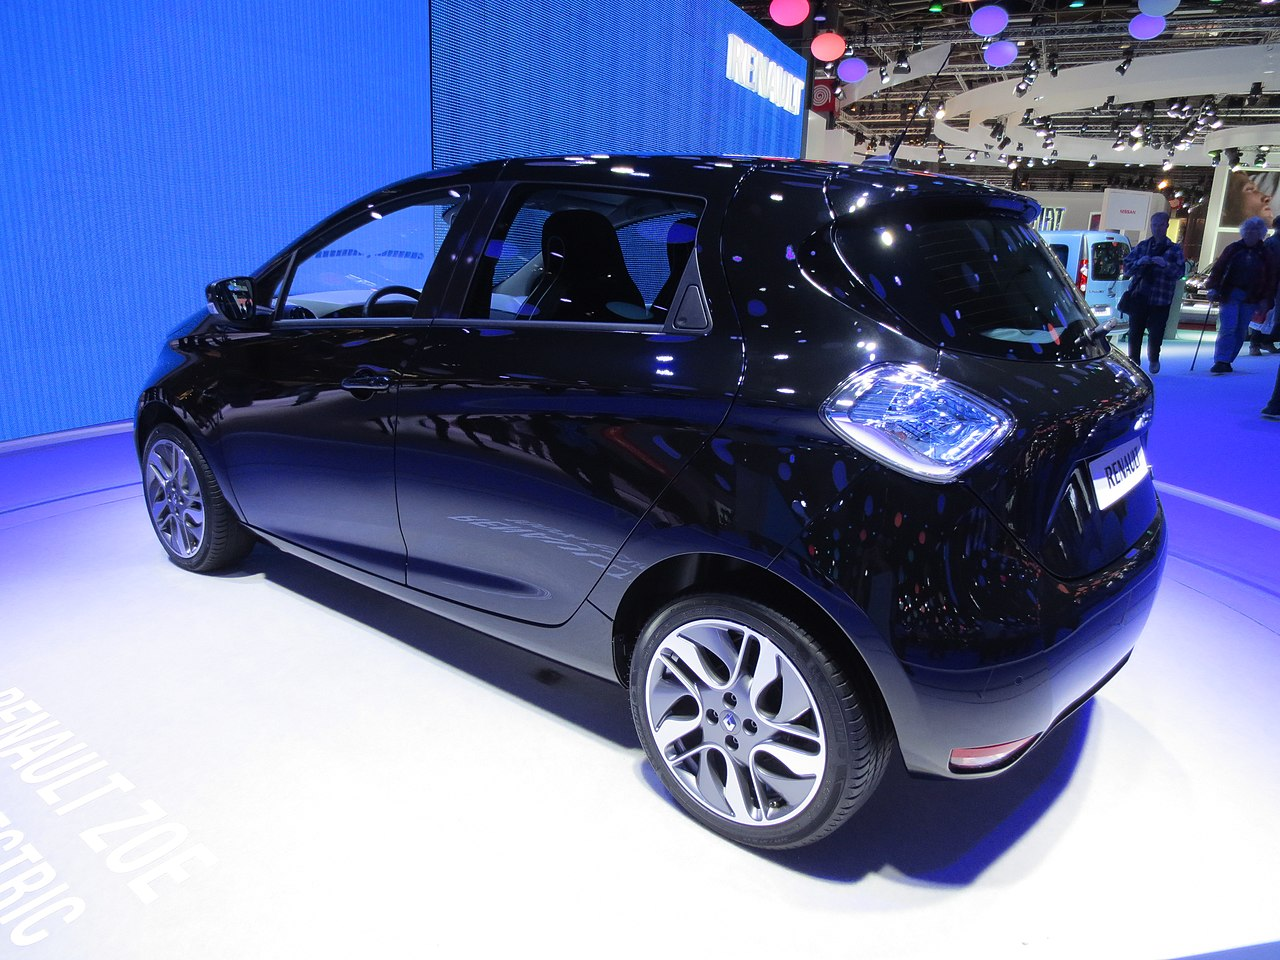 file renault zoe black rear view jpg wikimedia commons. Black Bedroom Furniture Sets. Home Design Ideas